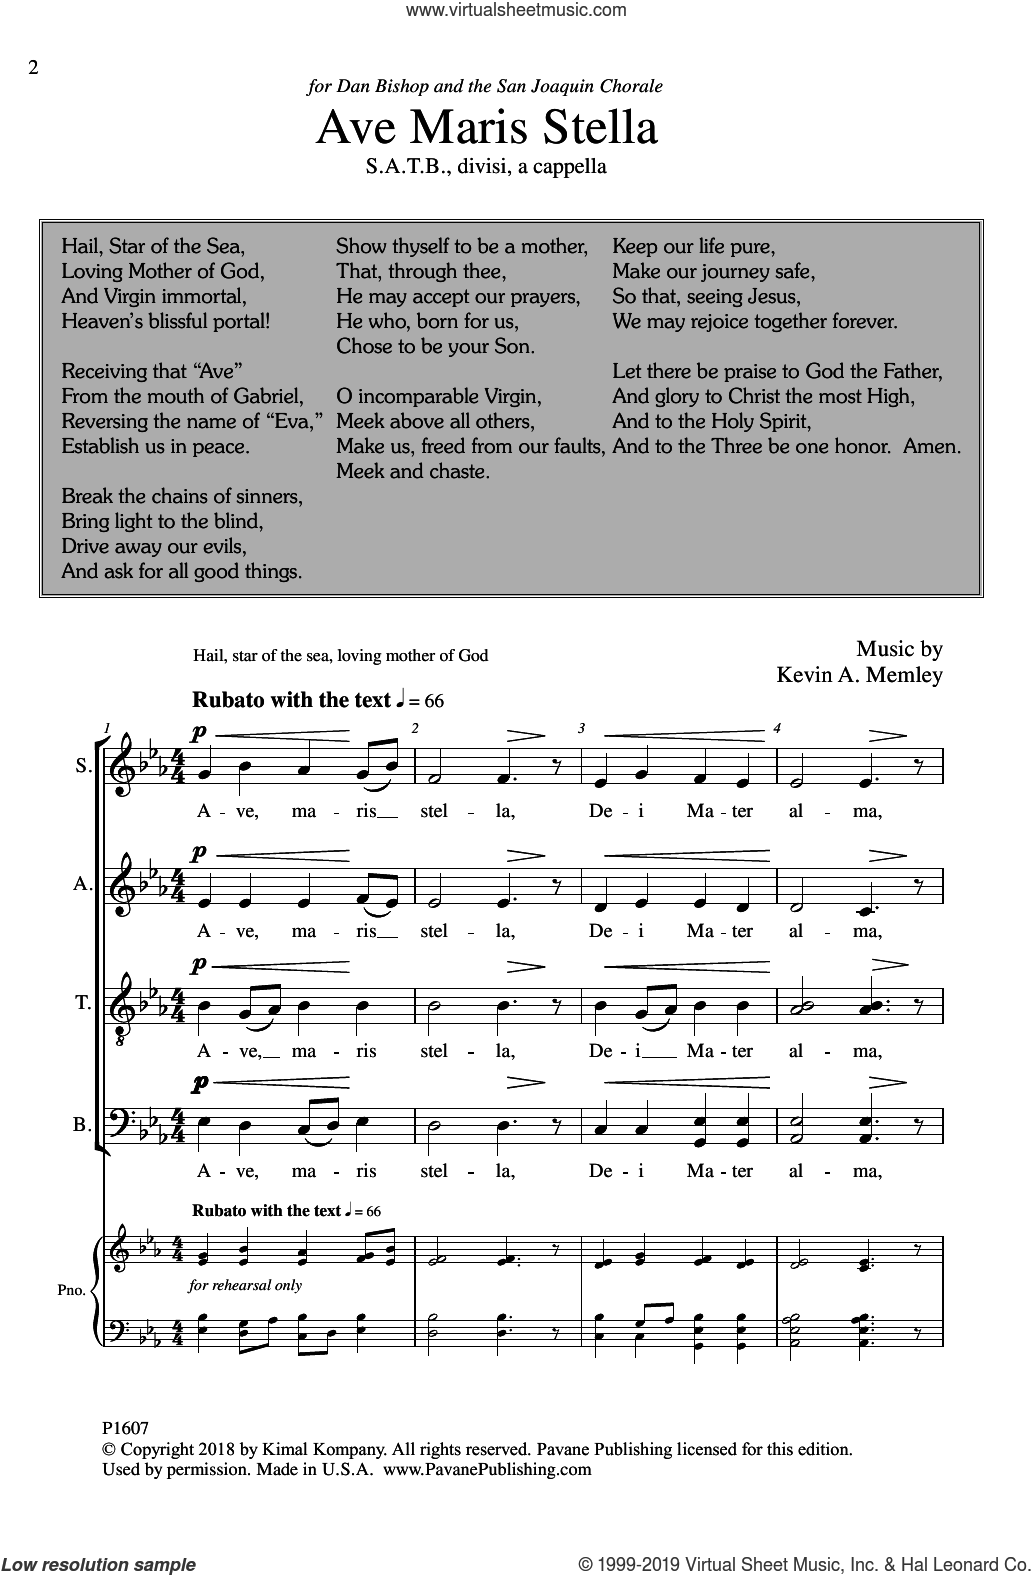 Ave Maris Stella sheet music for choir (SATB: soprano, alto, tenor, bass) by Kevin A. Memley, intermediate skill level